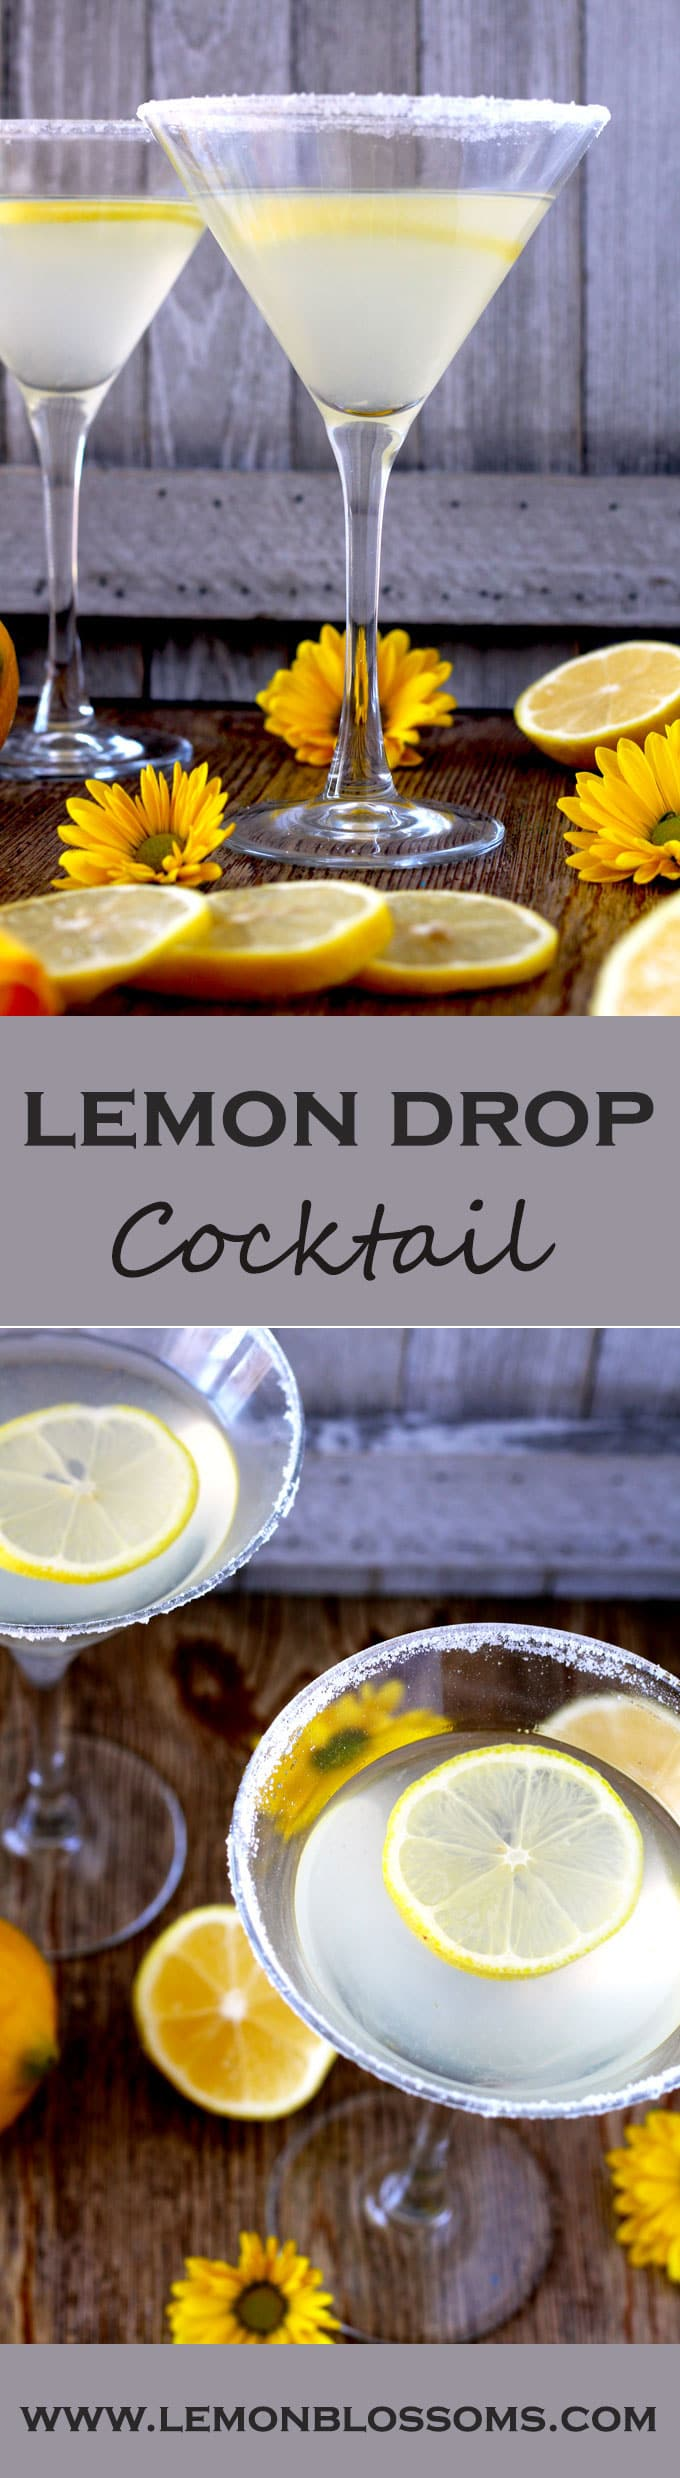 Lemony, sweet, sour and super easy to make. This Lemon Drop Cocktail is the perfect drink to enjoy any day! #cocktails #martini #lemondrop #vodka #lemonmartini #easy